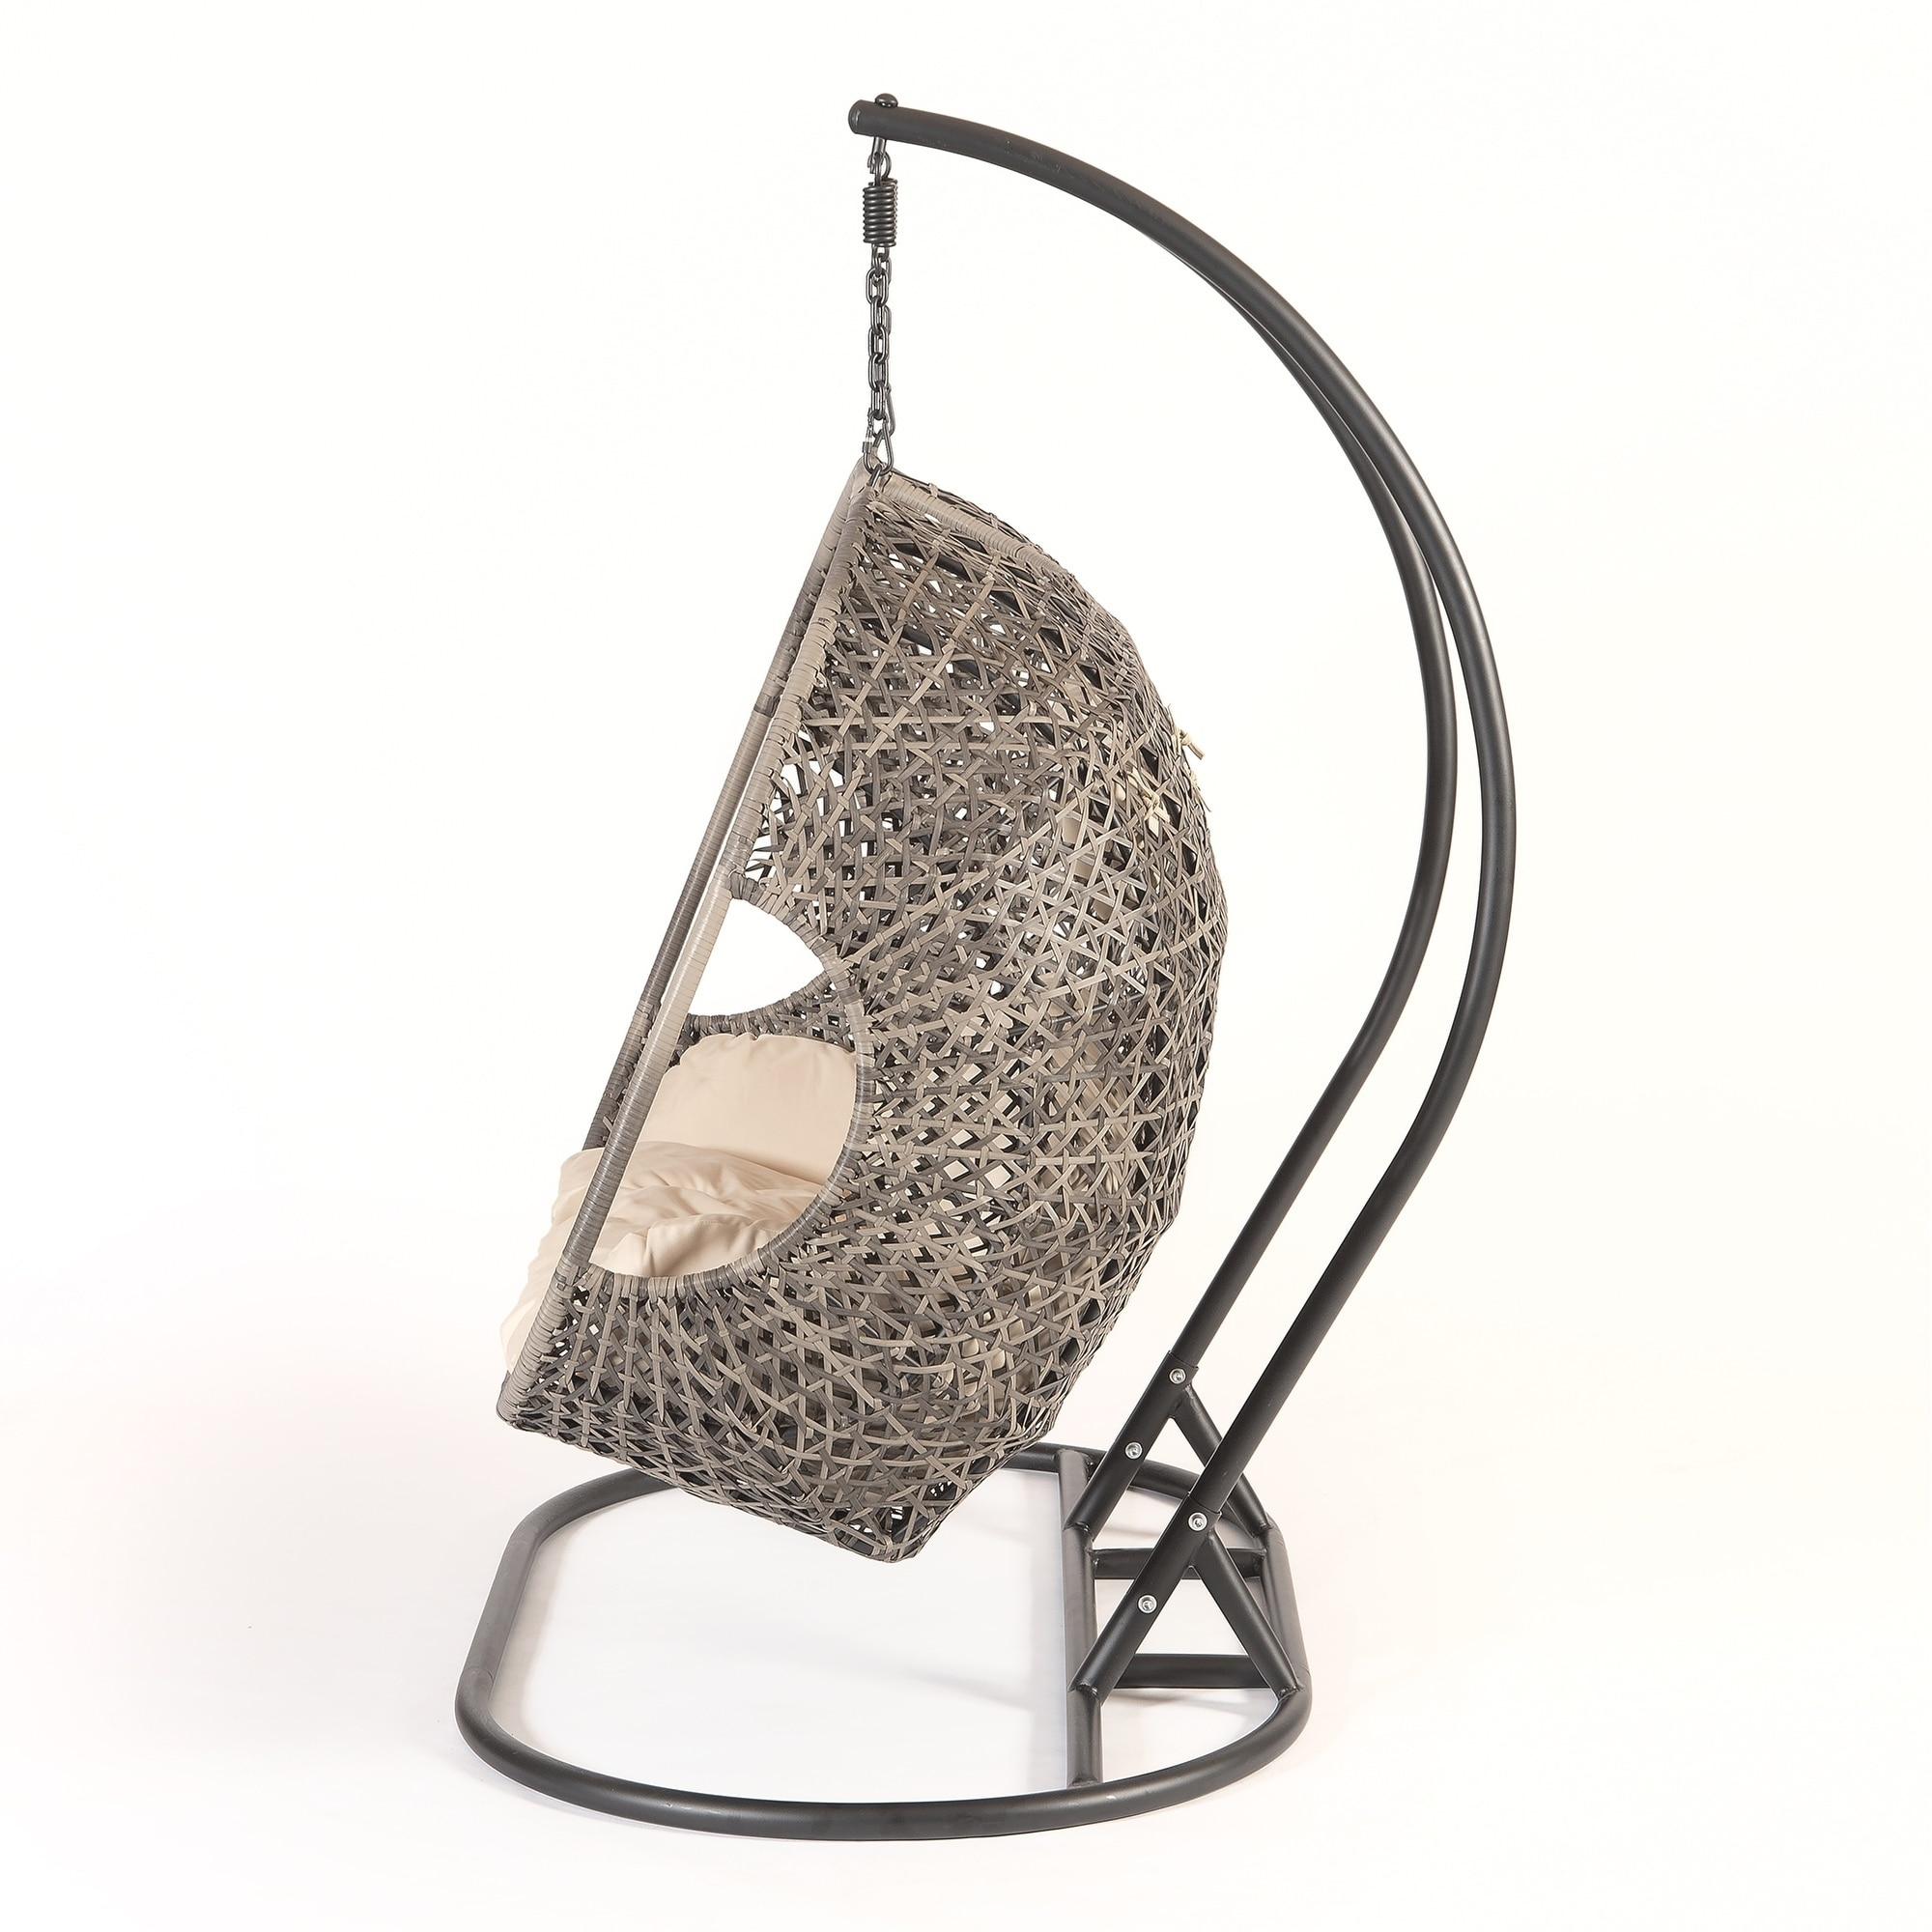 hanging chair swing glider patio chairs canada shop brampton espresso cocoon single with beige cushions on sale free shipping today overstock com 21422530